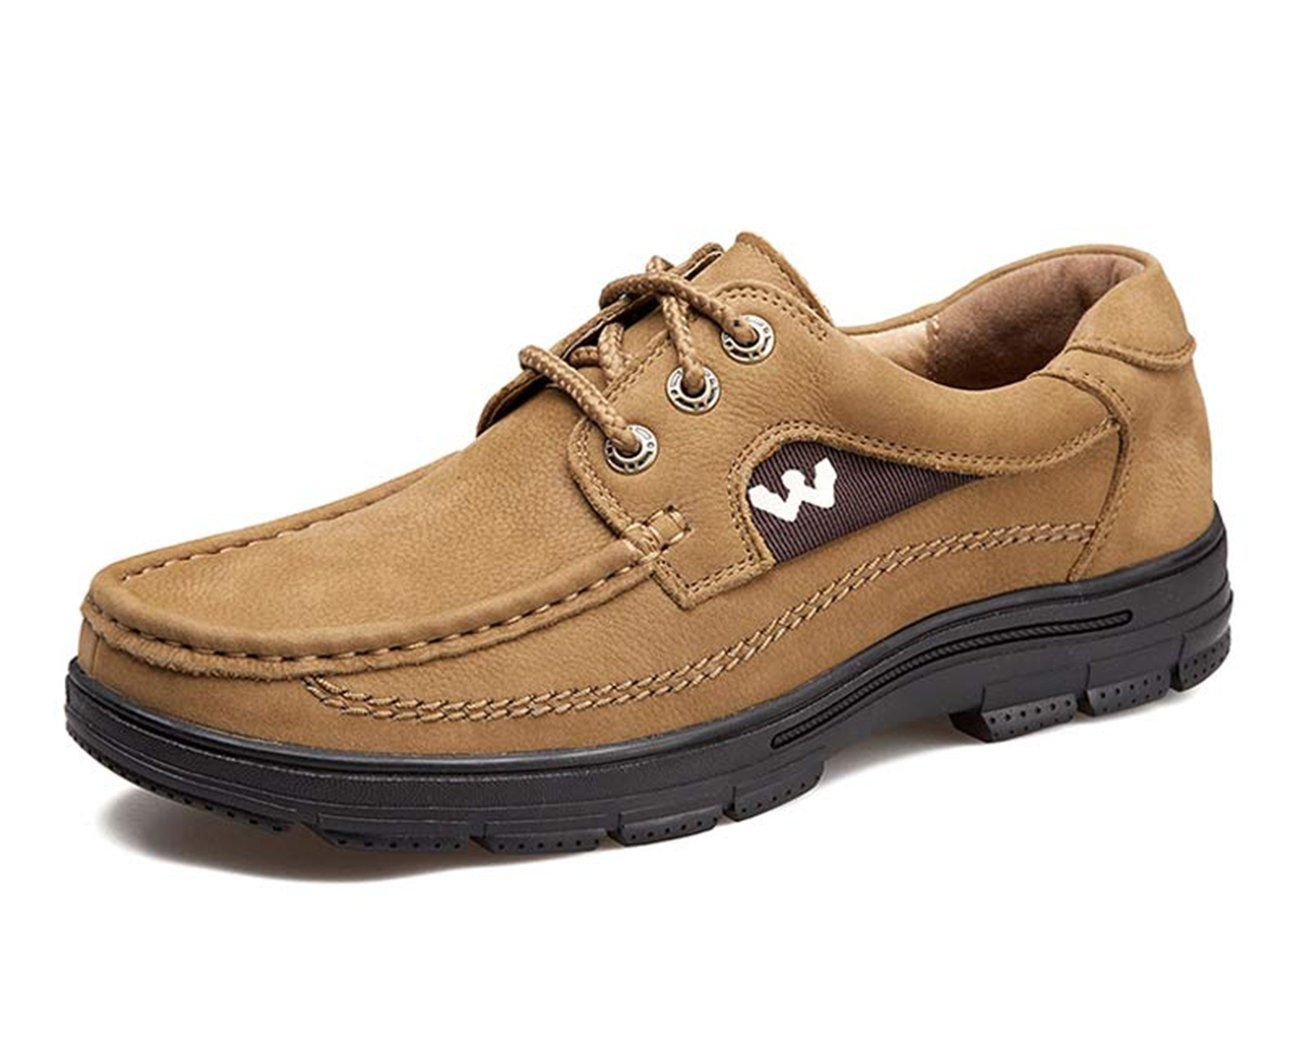 Men Shoes-Sport Casual Waliking Hiking Trail For Outdoor Active-Lace up Nubuck Leather